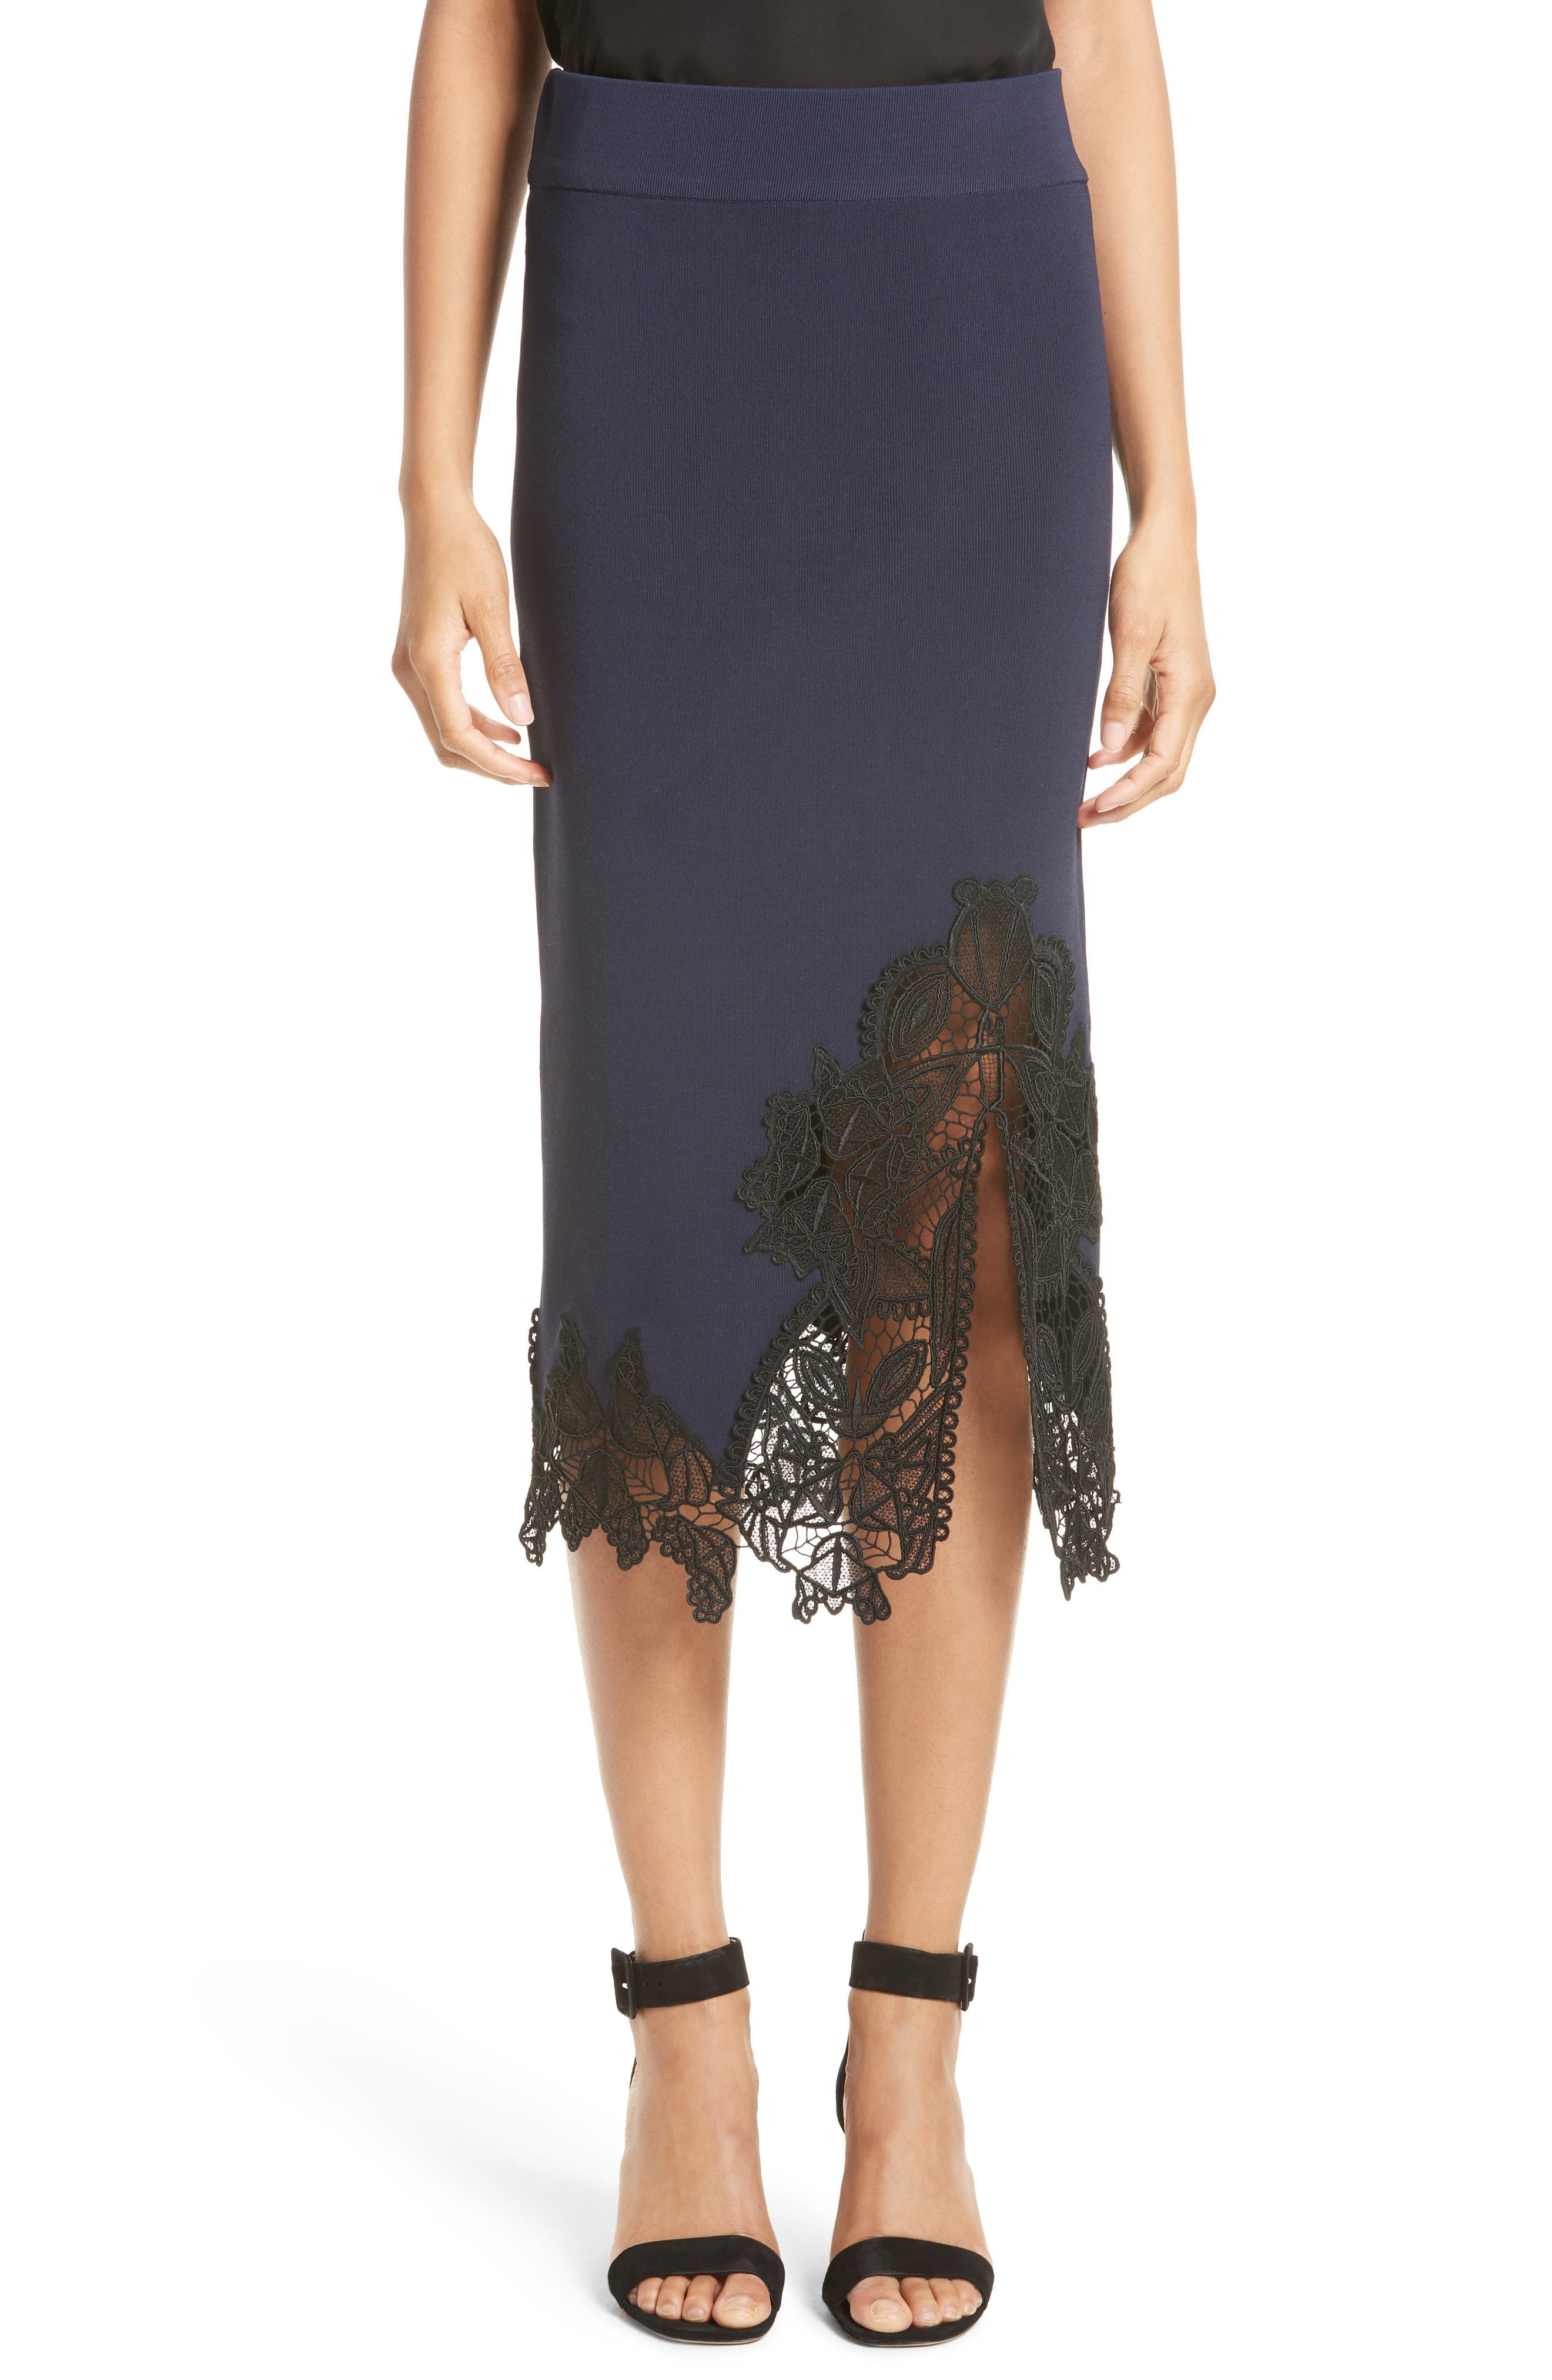 JONATHAN SIMKHAI Lace Appliqué Knit Pencil Skirt